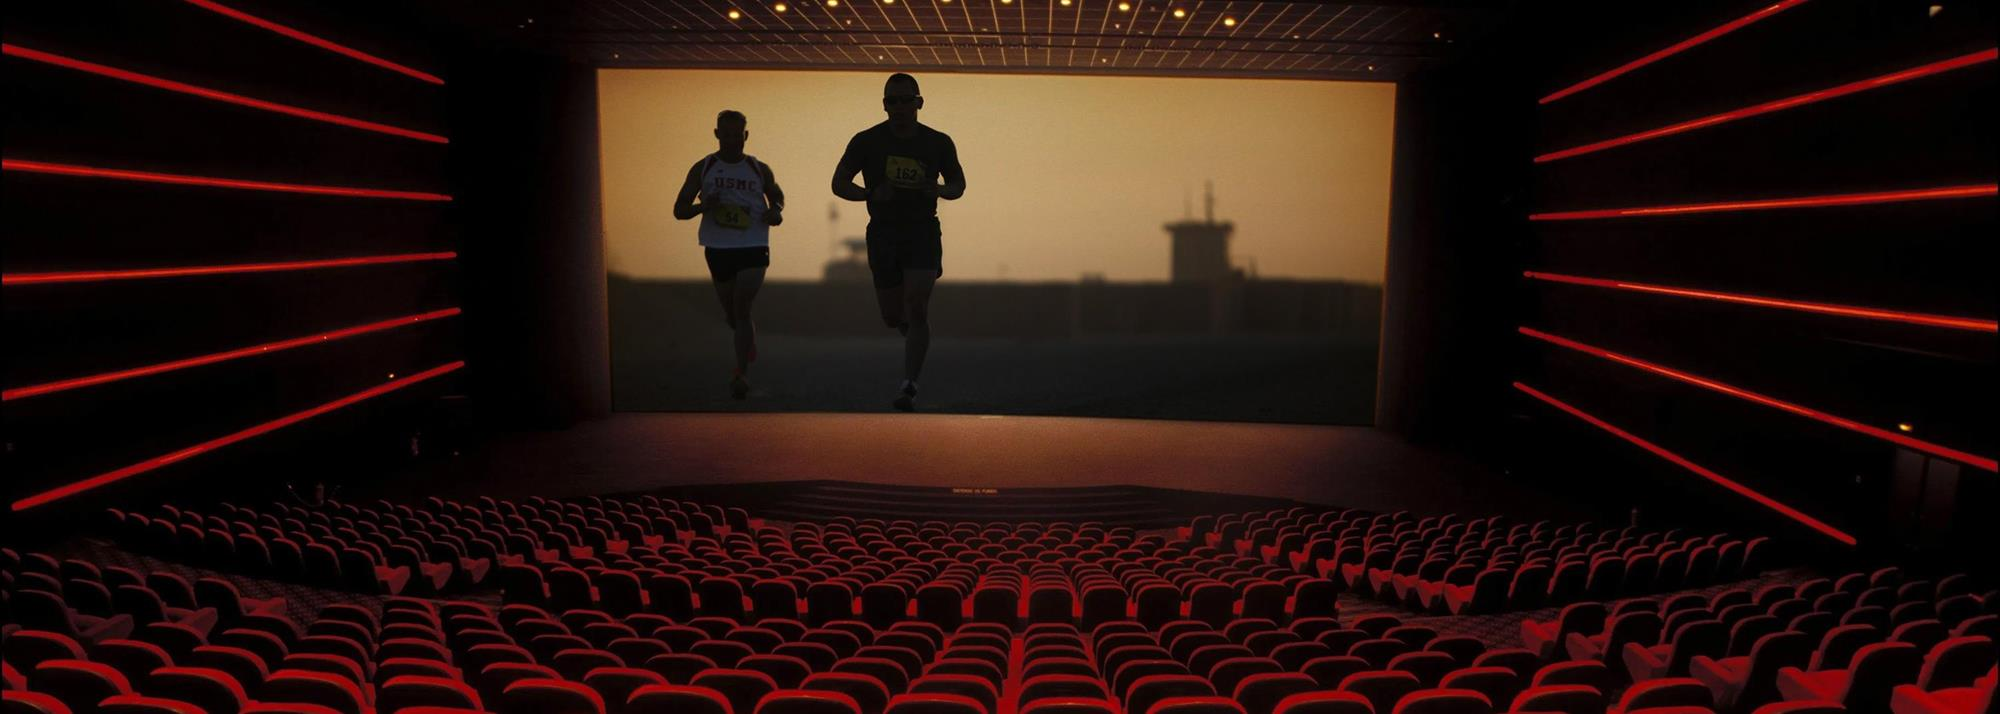 Ten of the most successful athletics movies of all time